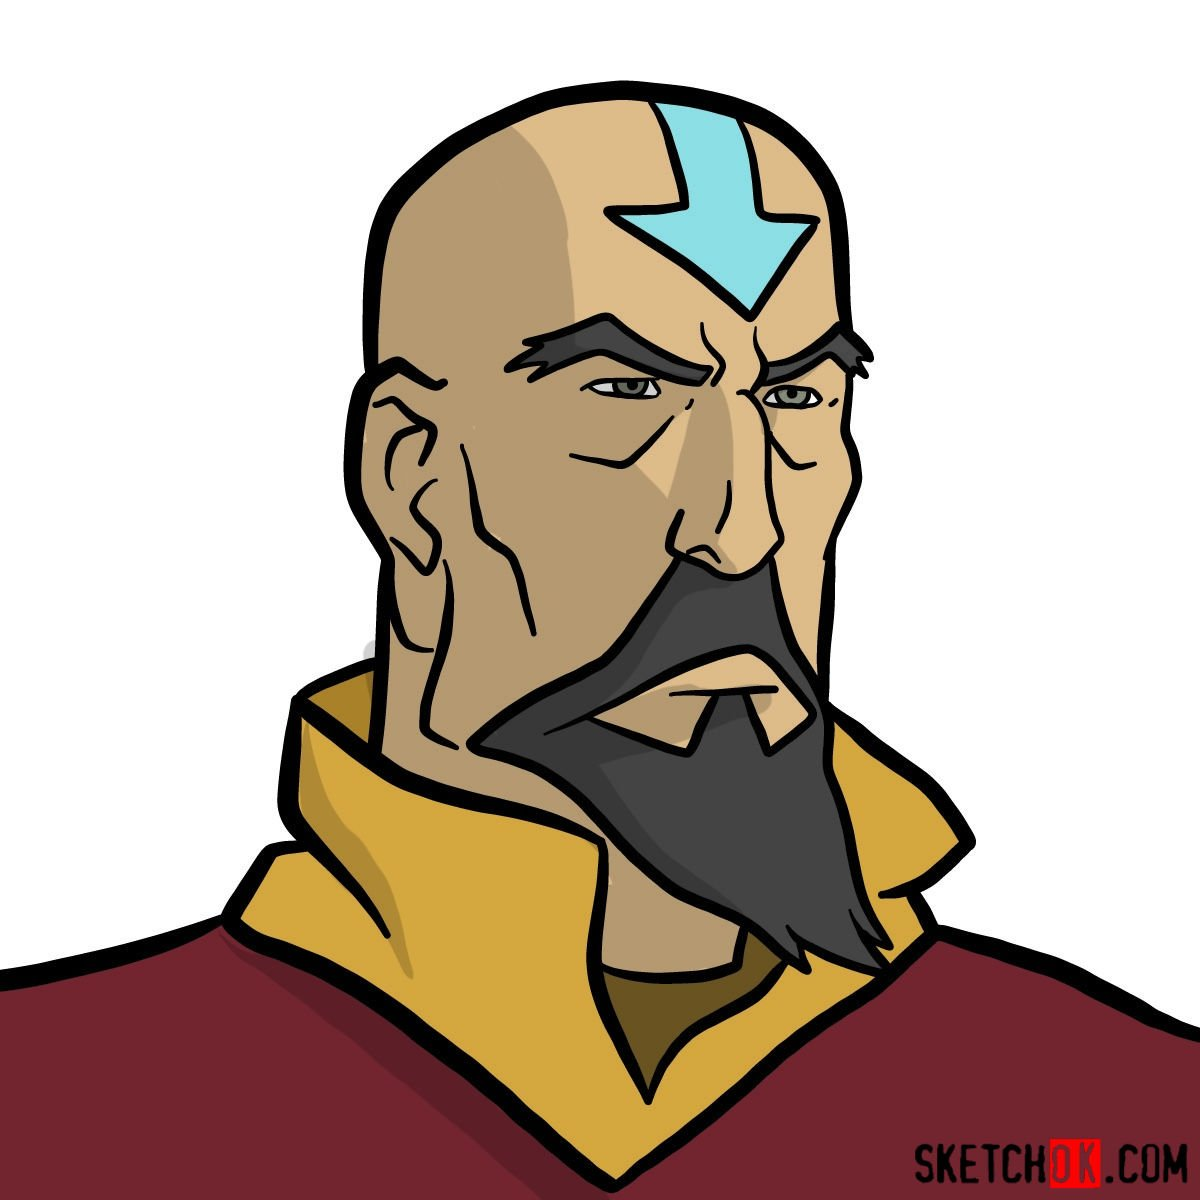 How to draw Tenzin's face